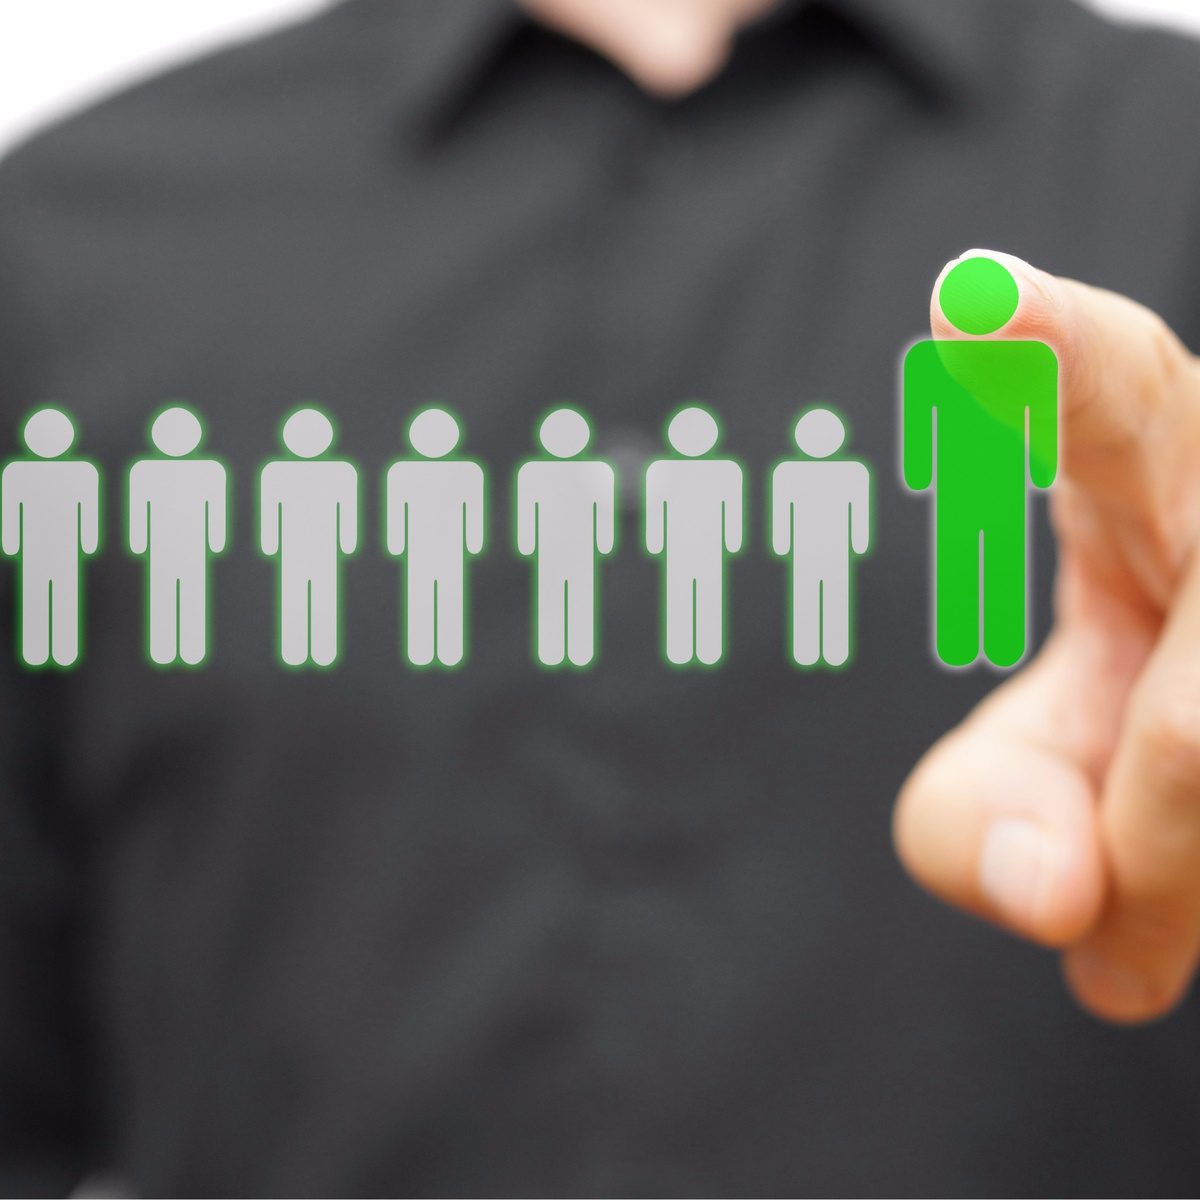 Workforce Management for Staffing: Top 5 Features for the Industry